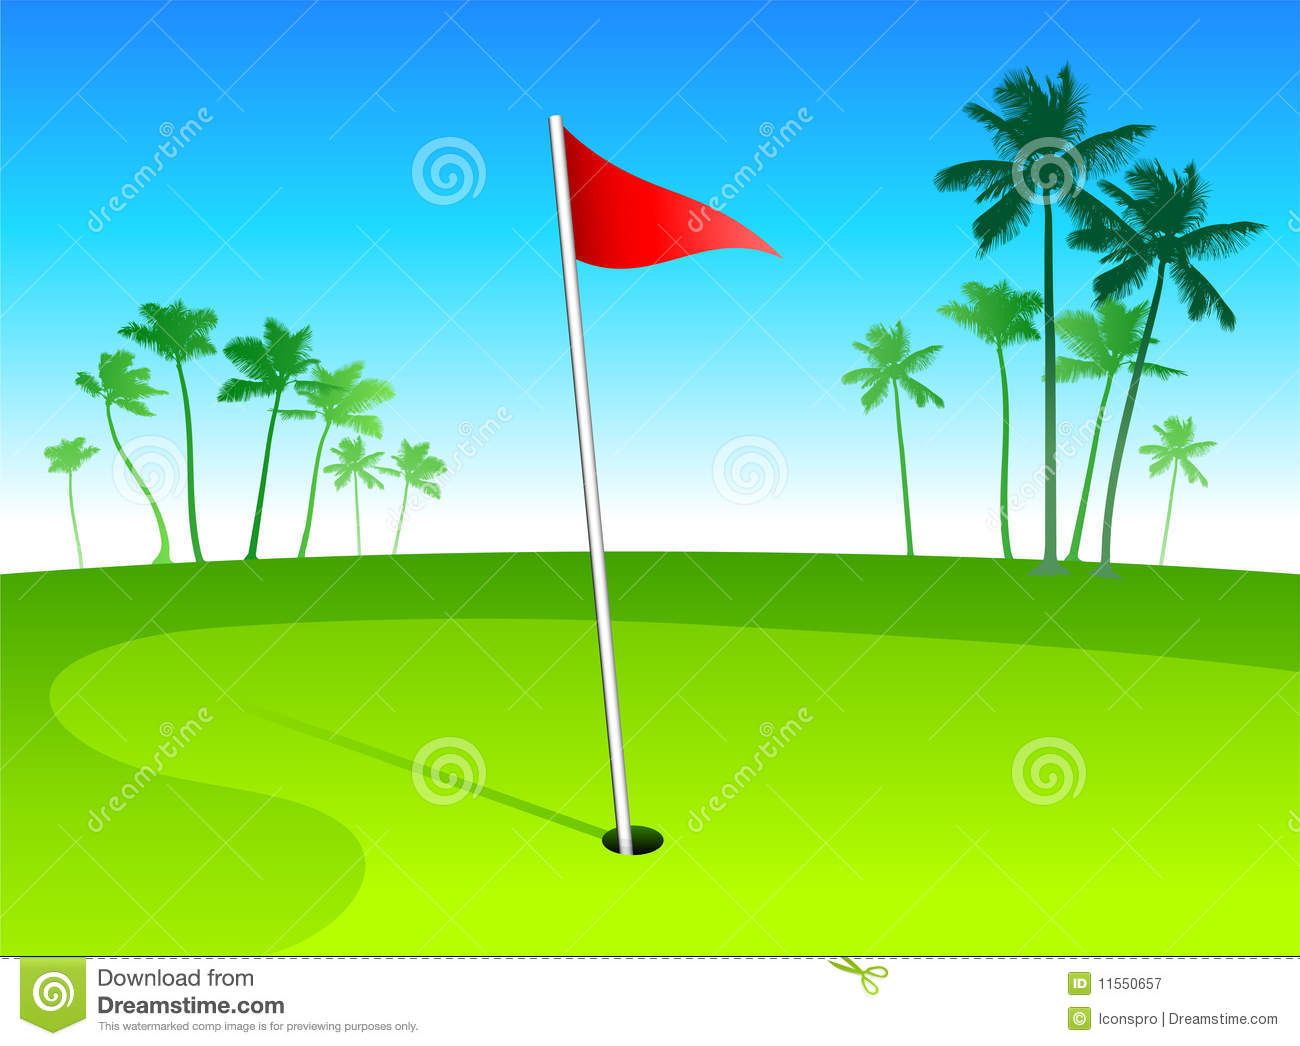 luxury golf course with palm trees on blue sky bac stock vector rh dreamstime com golf course clipart golf club clipart